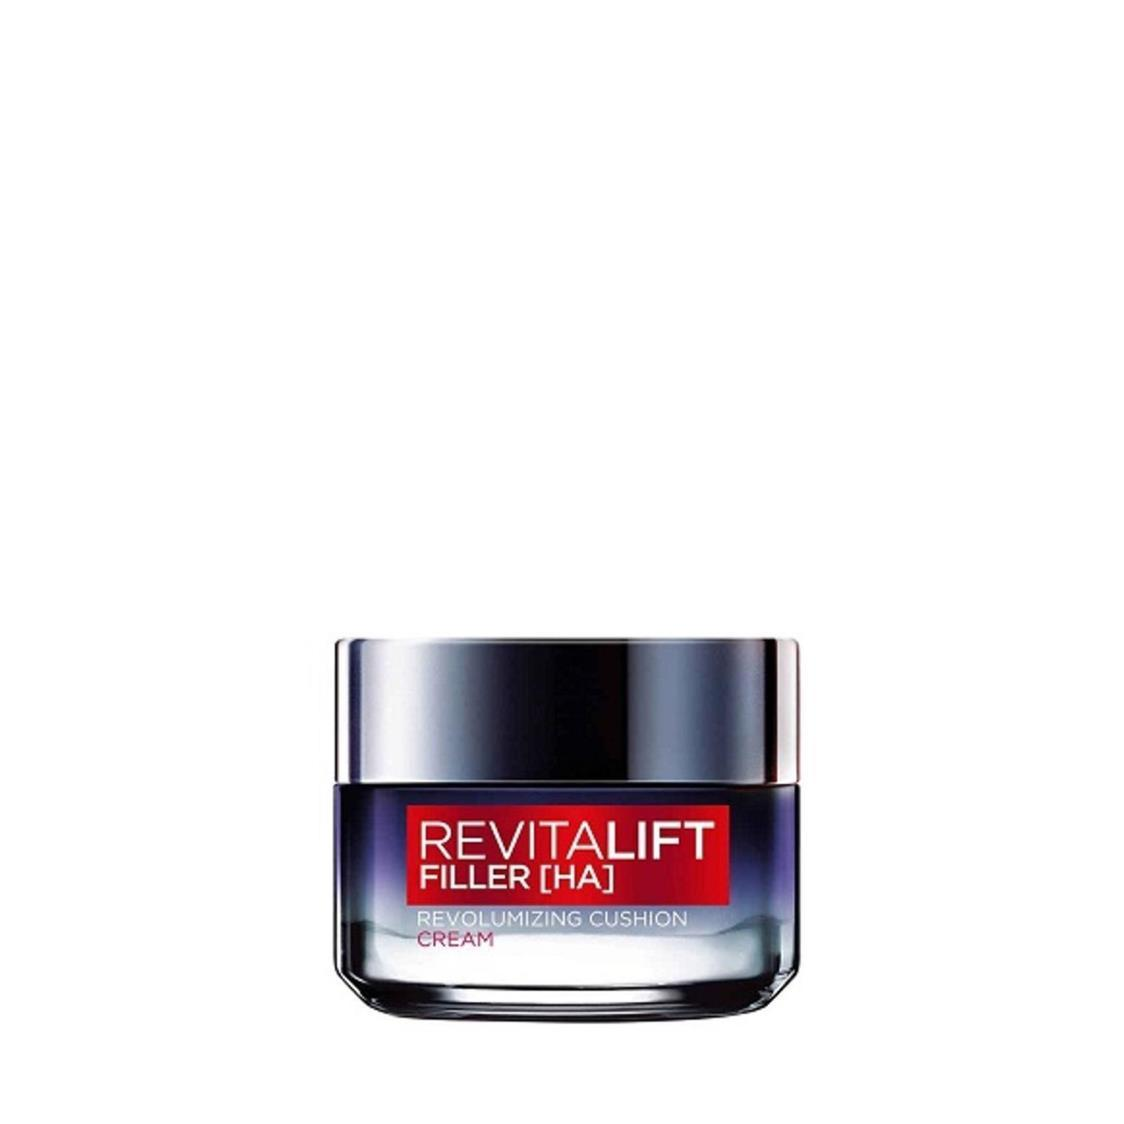 Revitalift Filler Cushion Cream 50ml